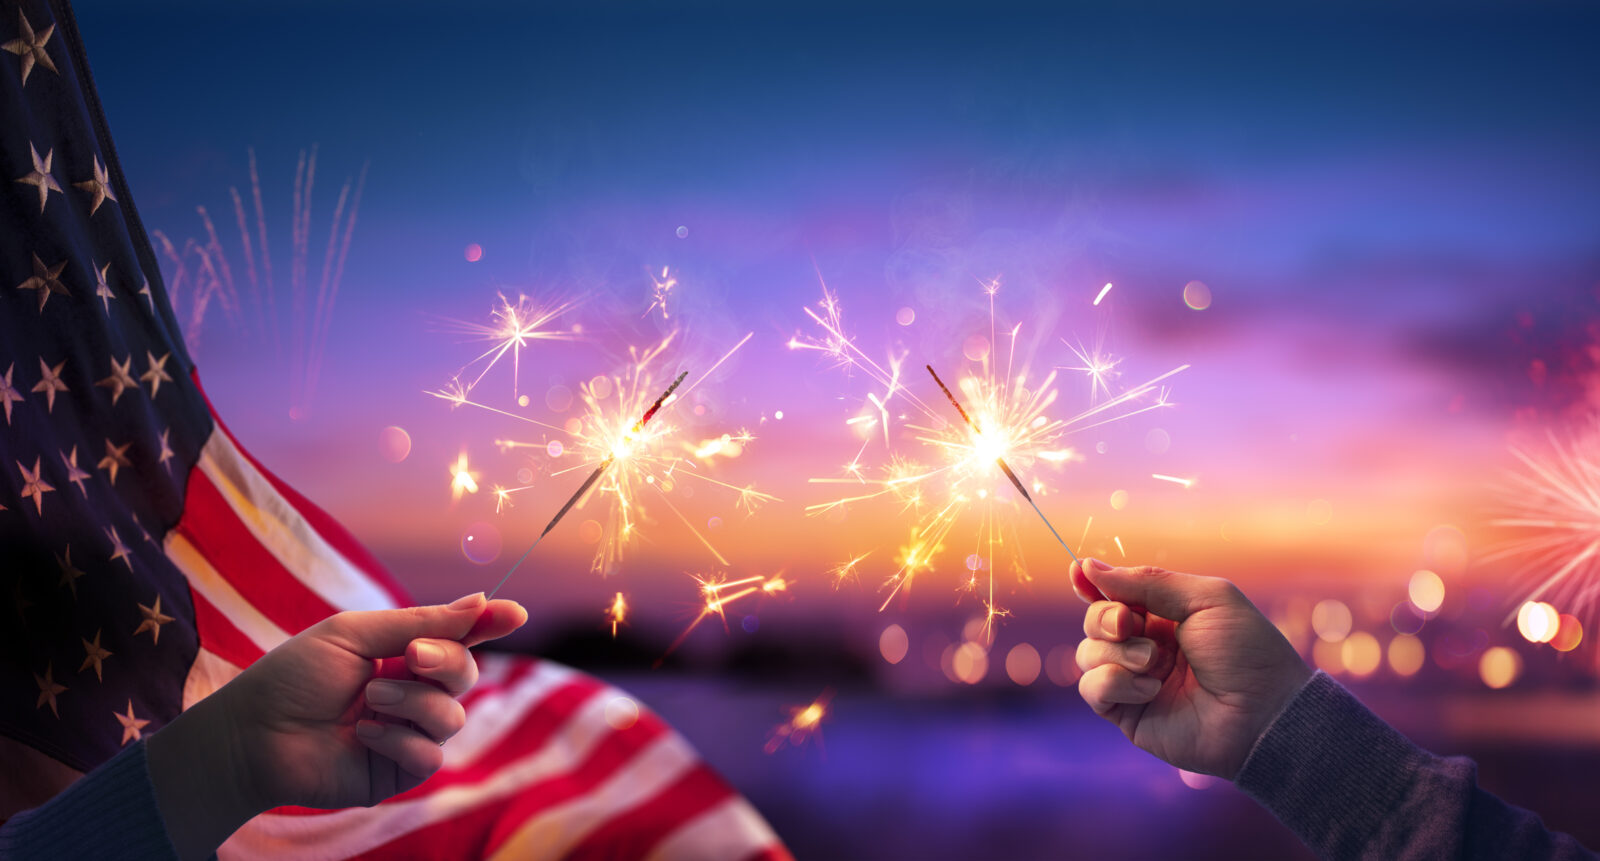 Hands holding sparklers against a background of fireworks, for a blog post from LCA on fireworks safety.